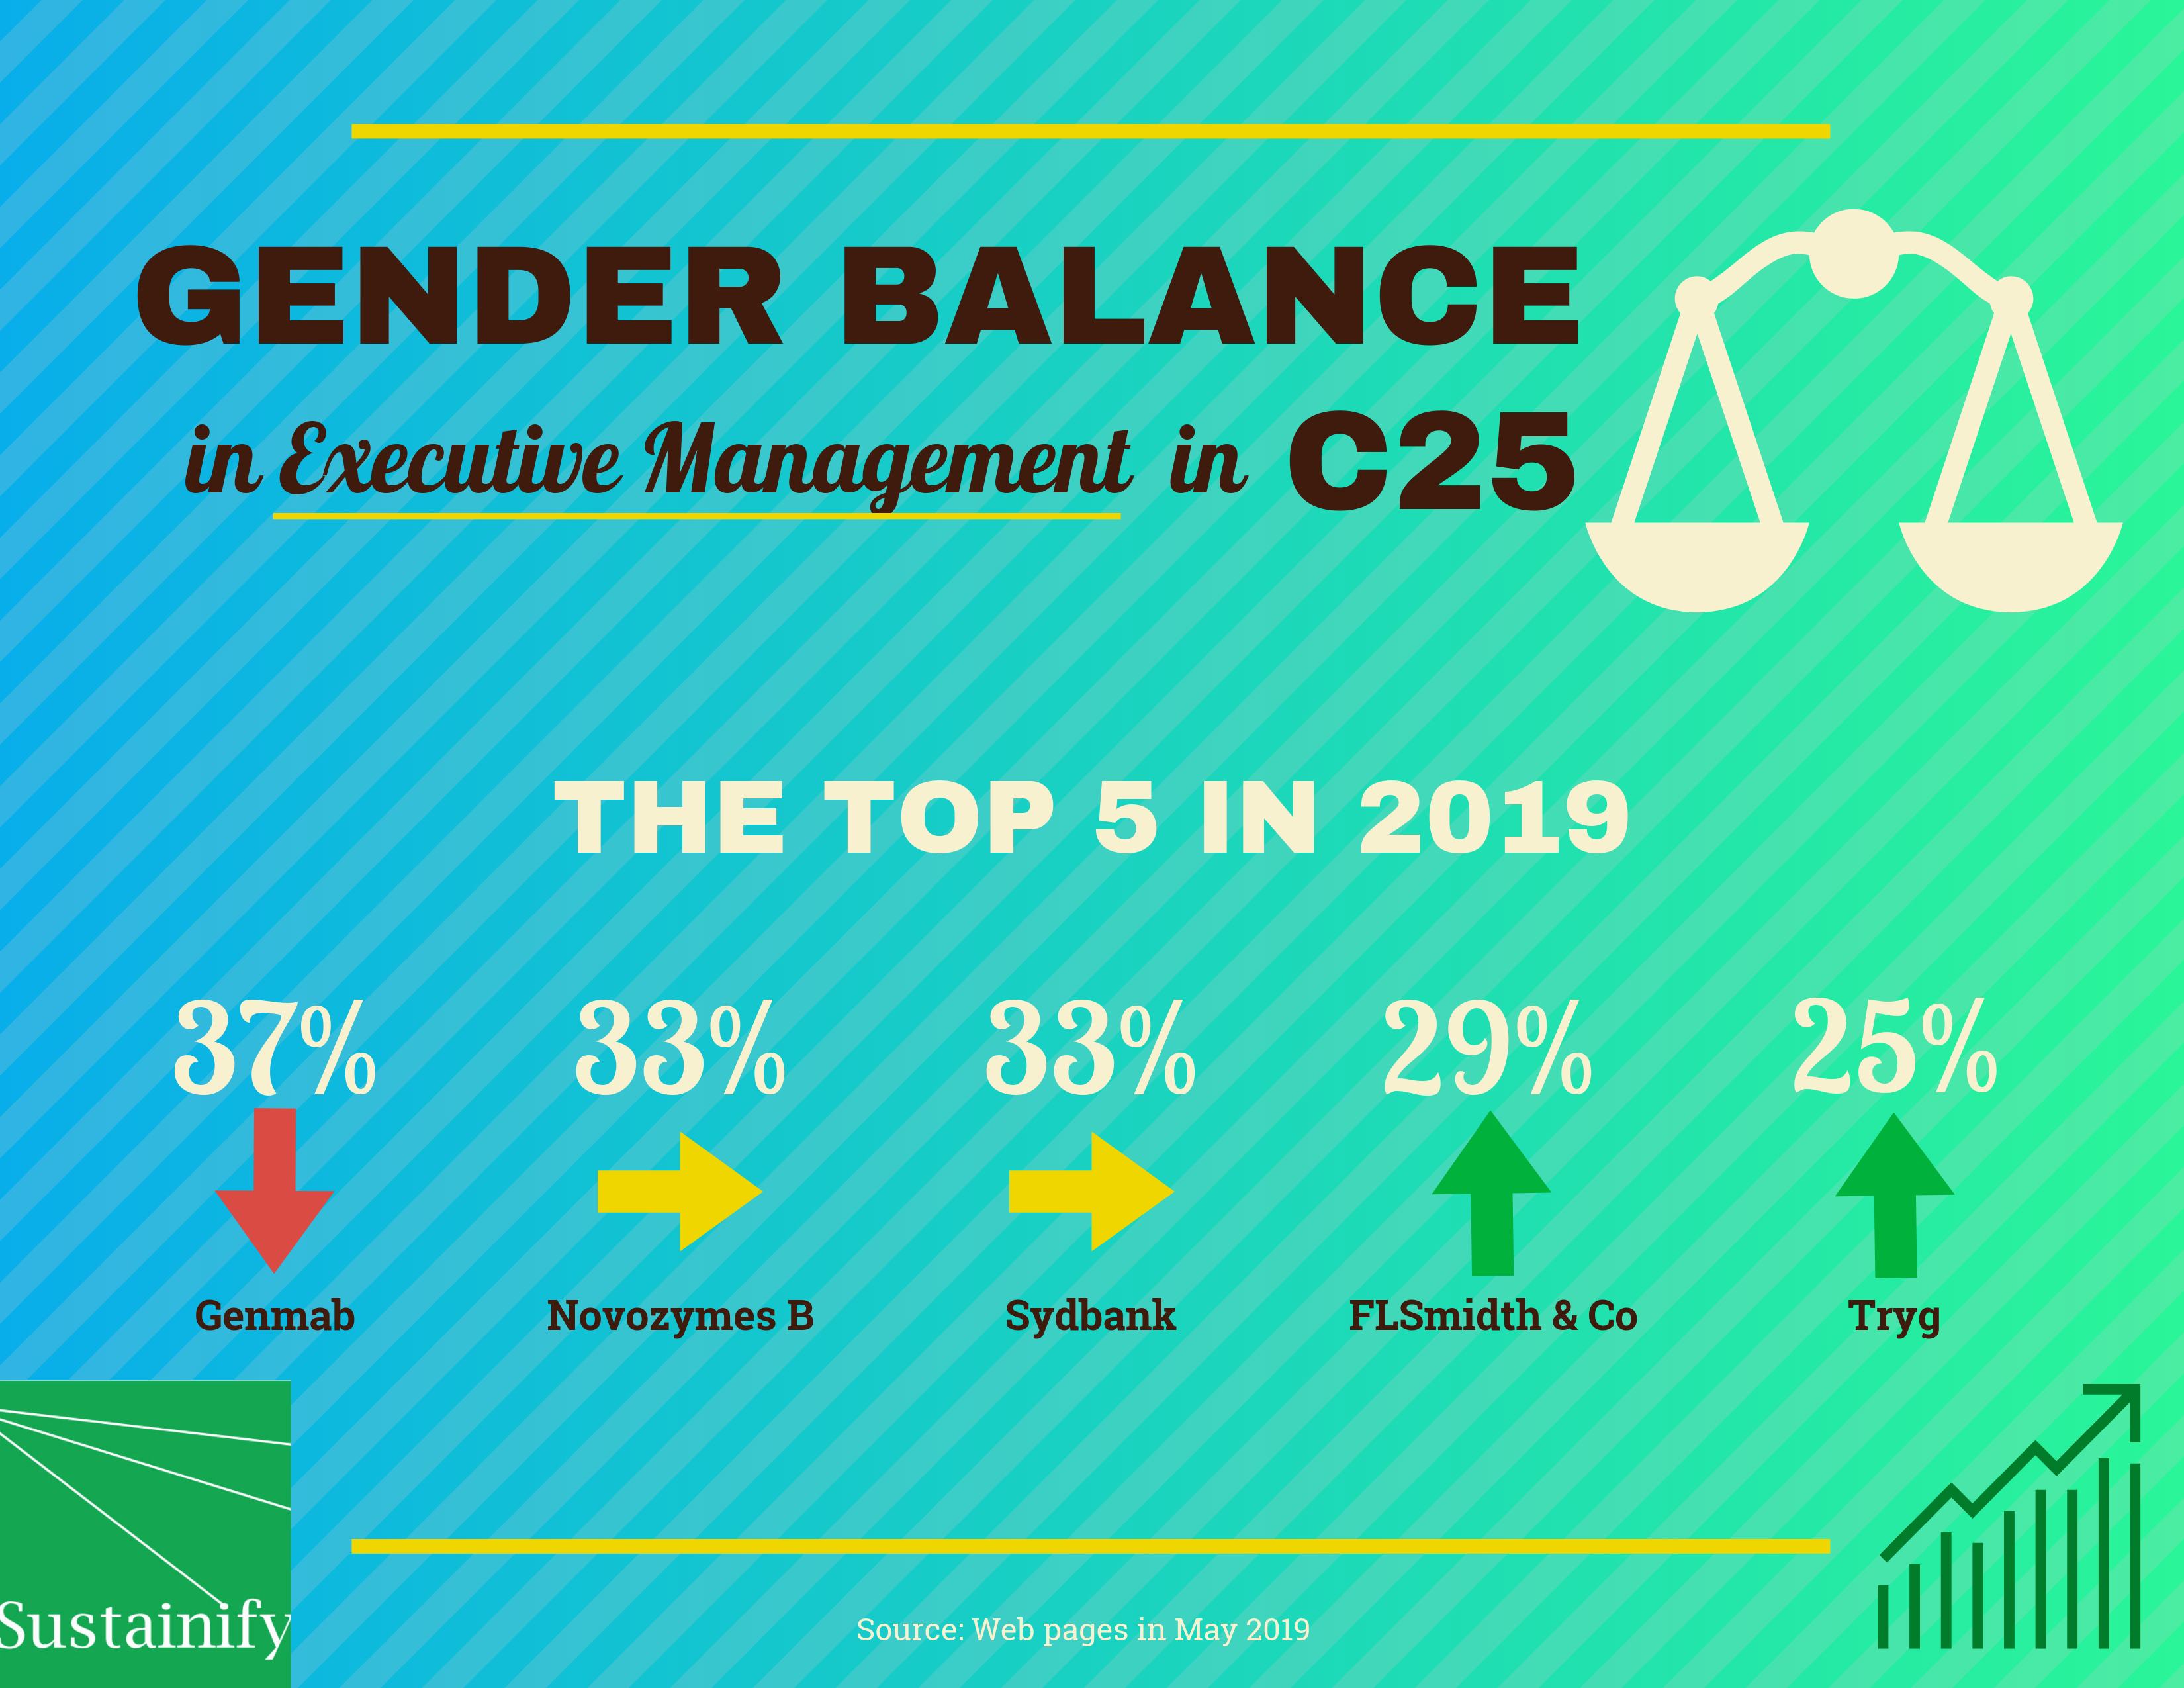 Sustainify_CSR rating of listed companies_gender balance in board of directors of C25 top 5